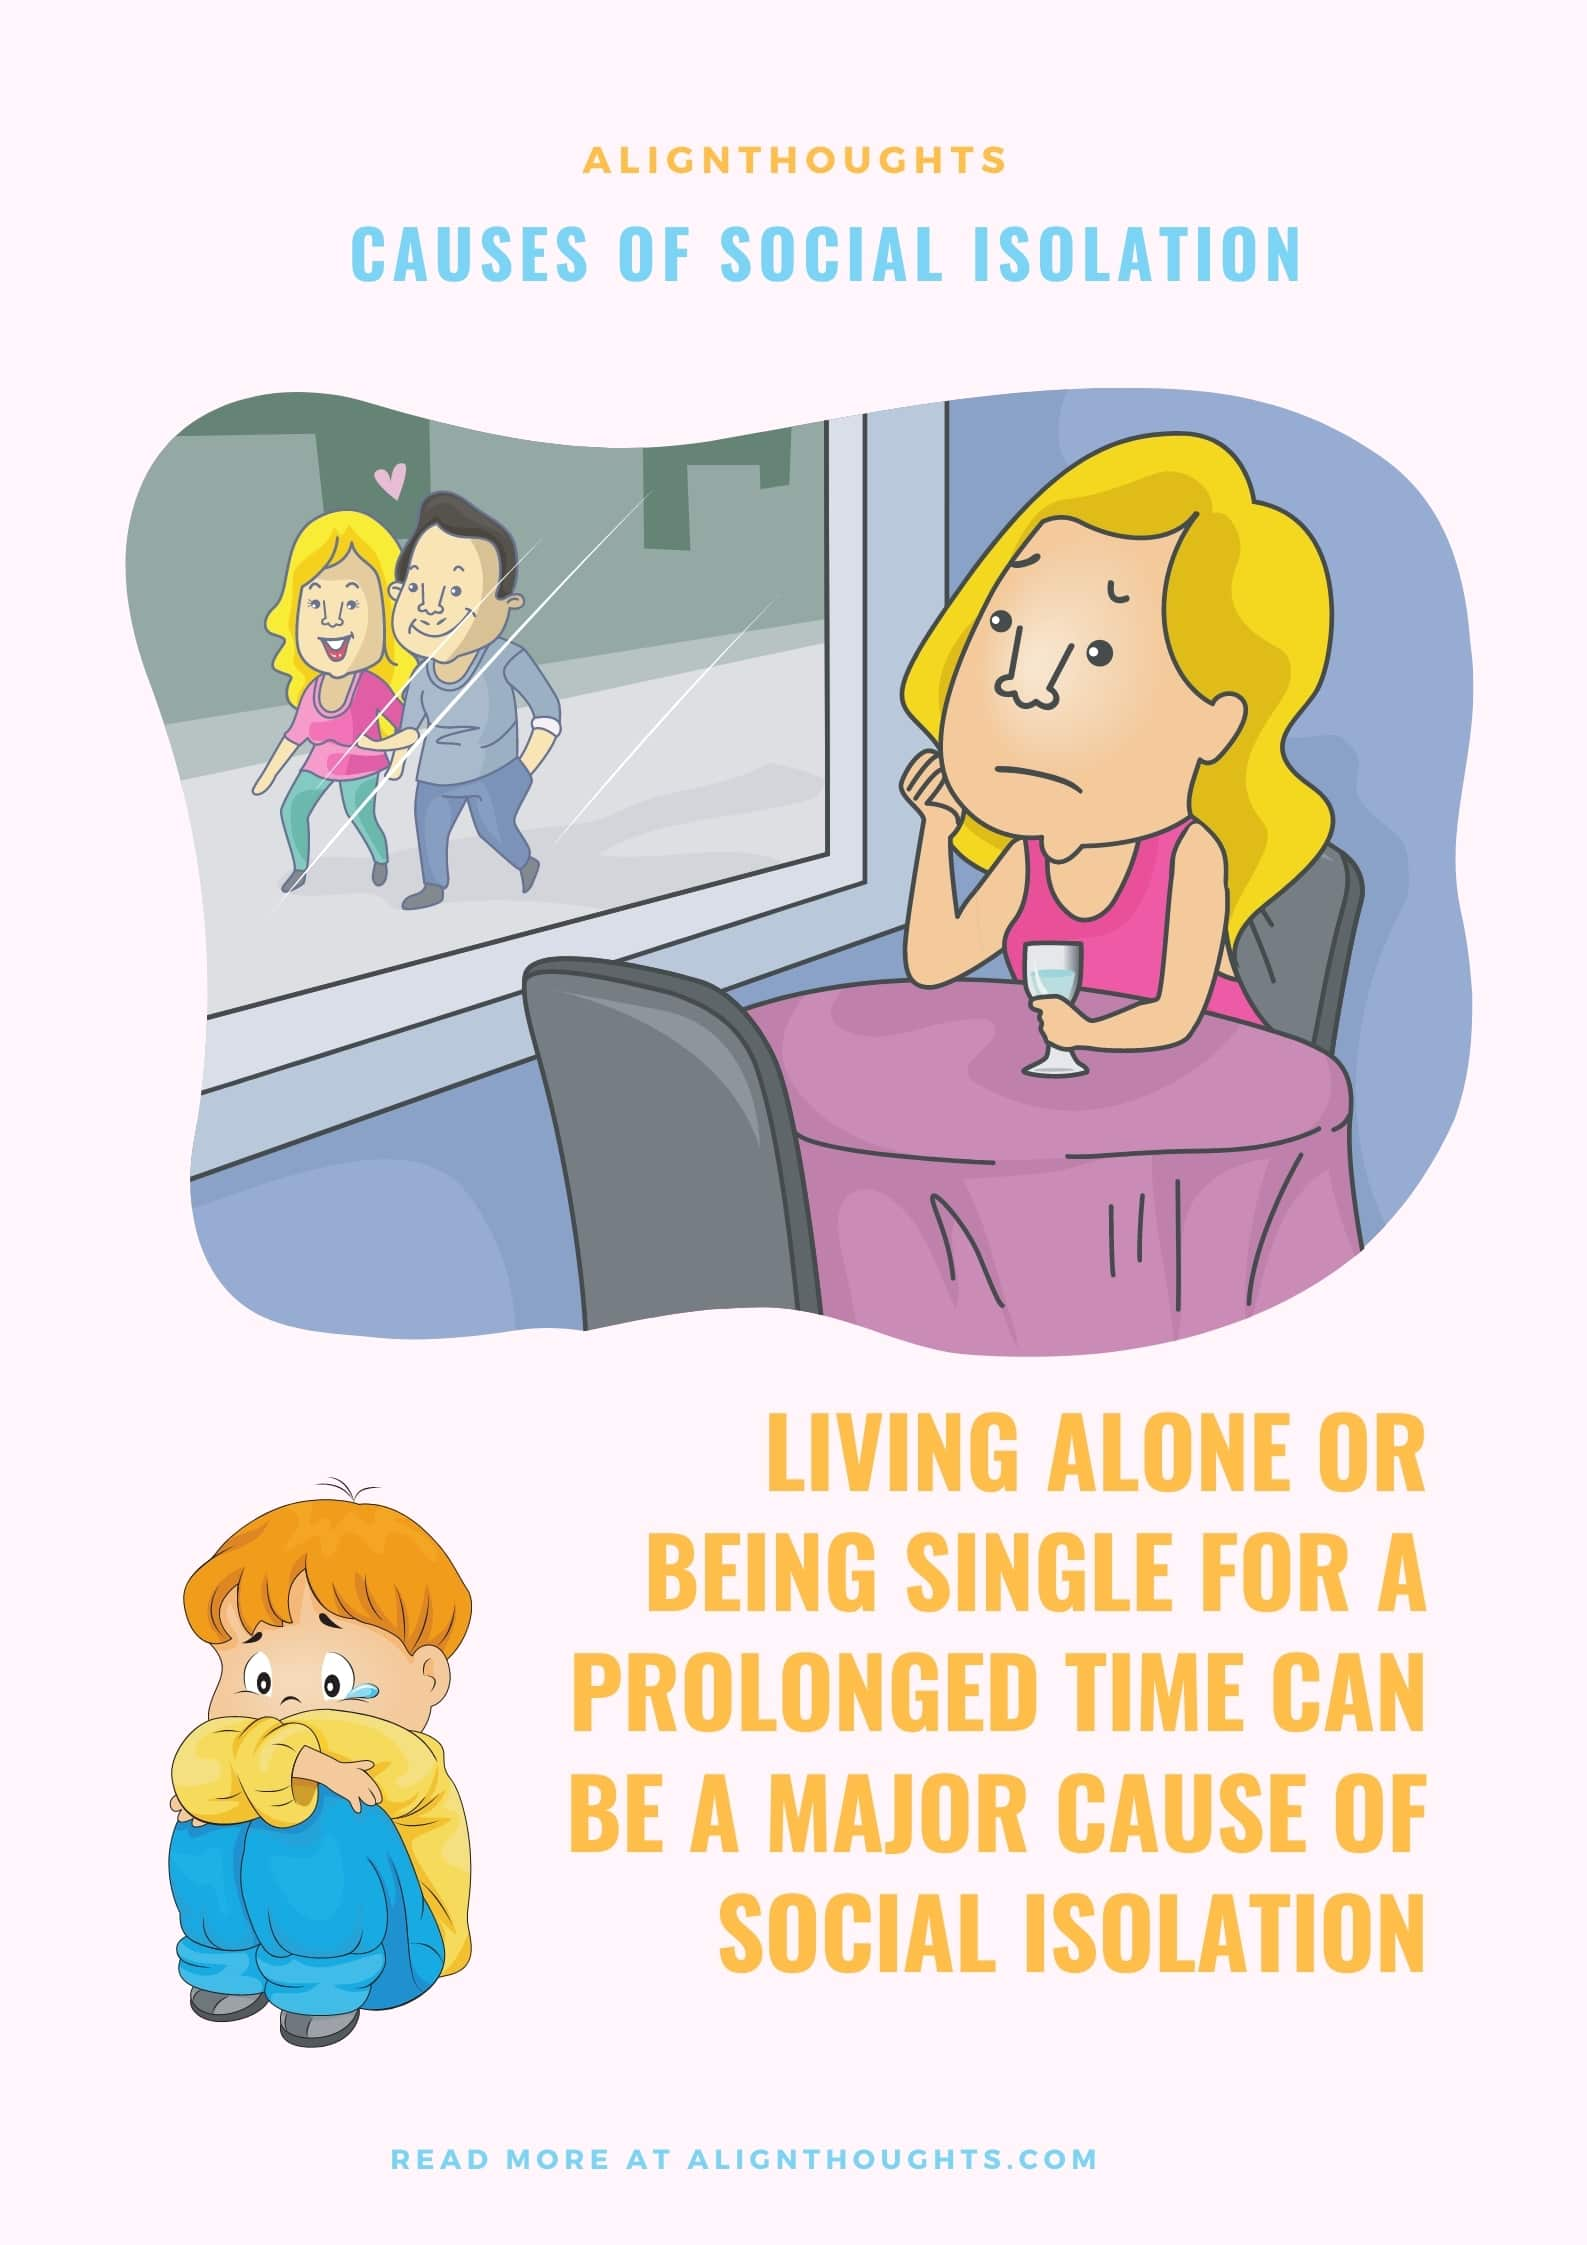 causes of social isolation-alignthoughts